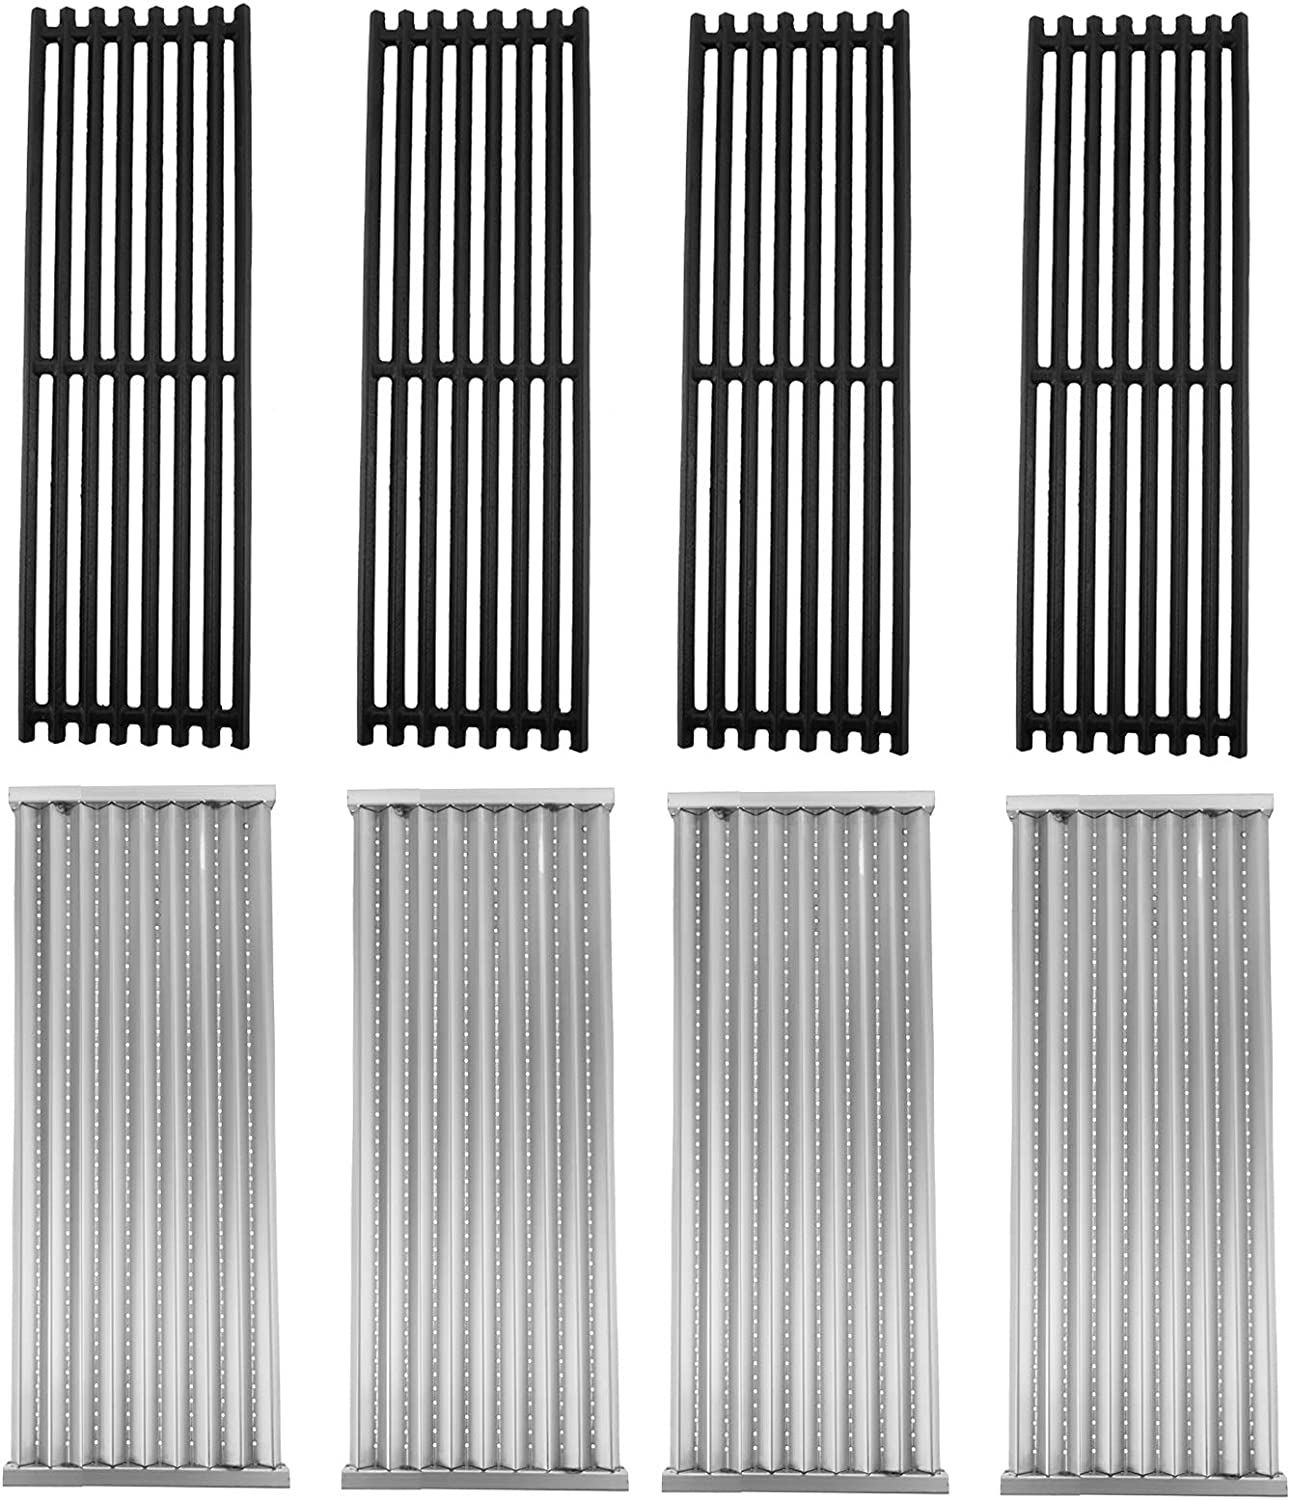 BBQ Future 4 Pack Grill Grate and Emitter Replacement Parts for ...